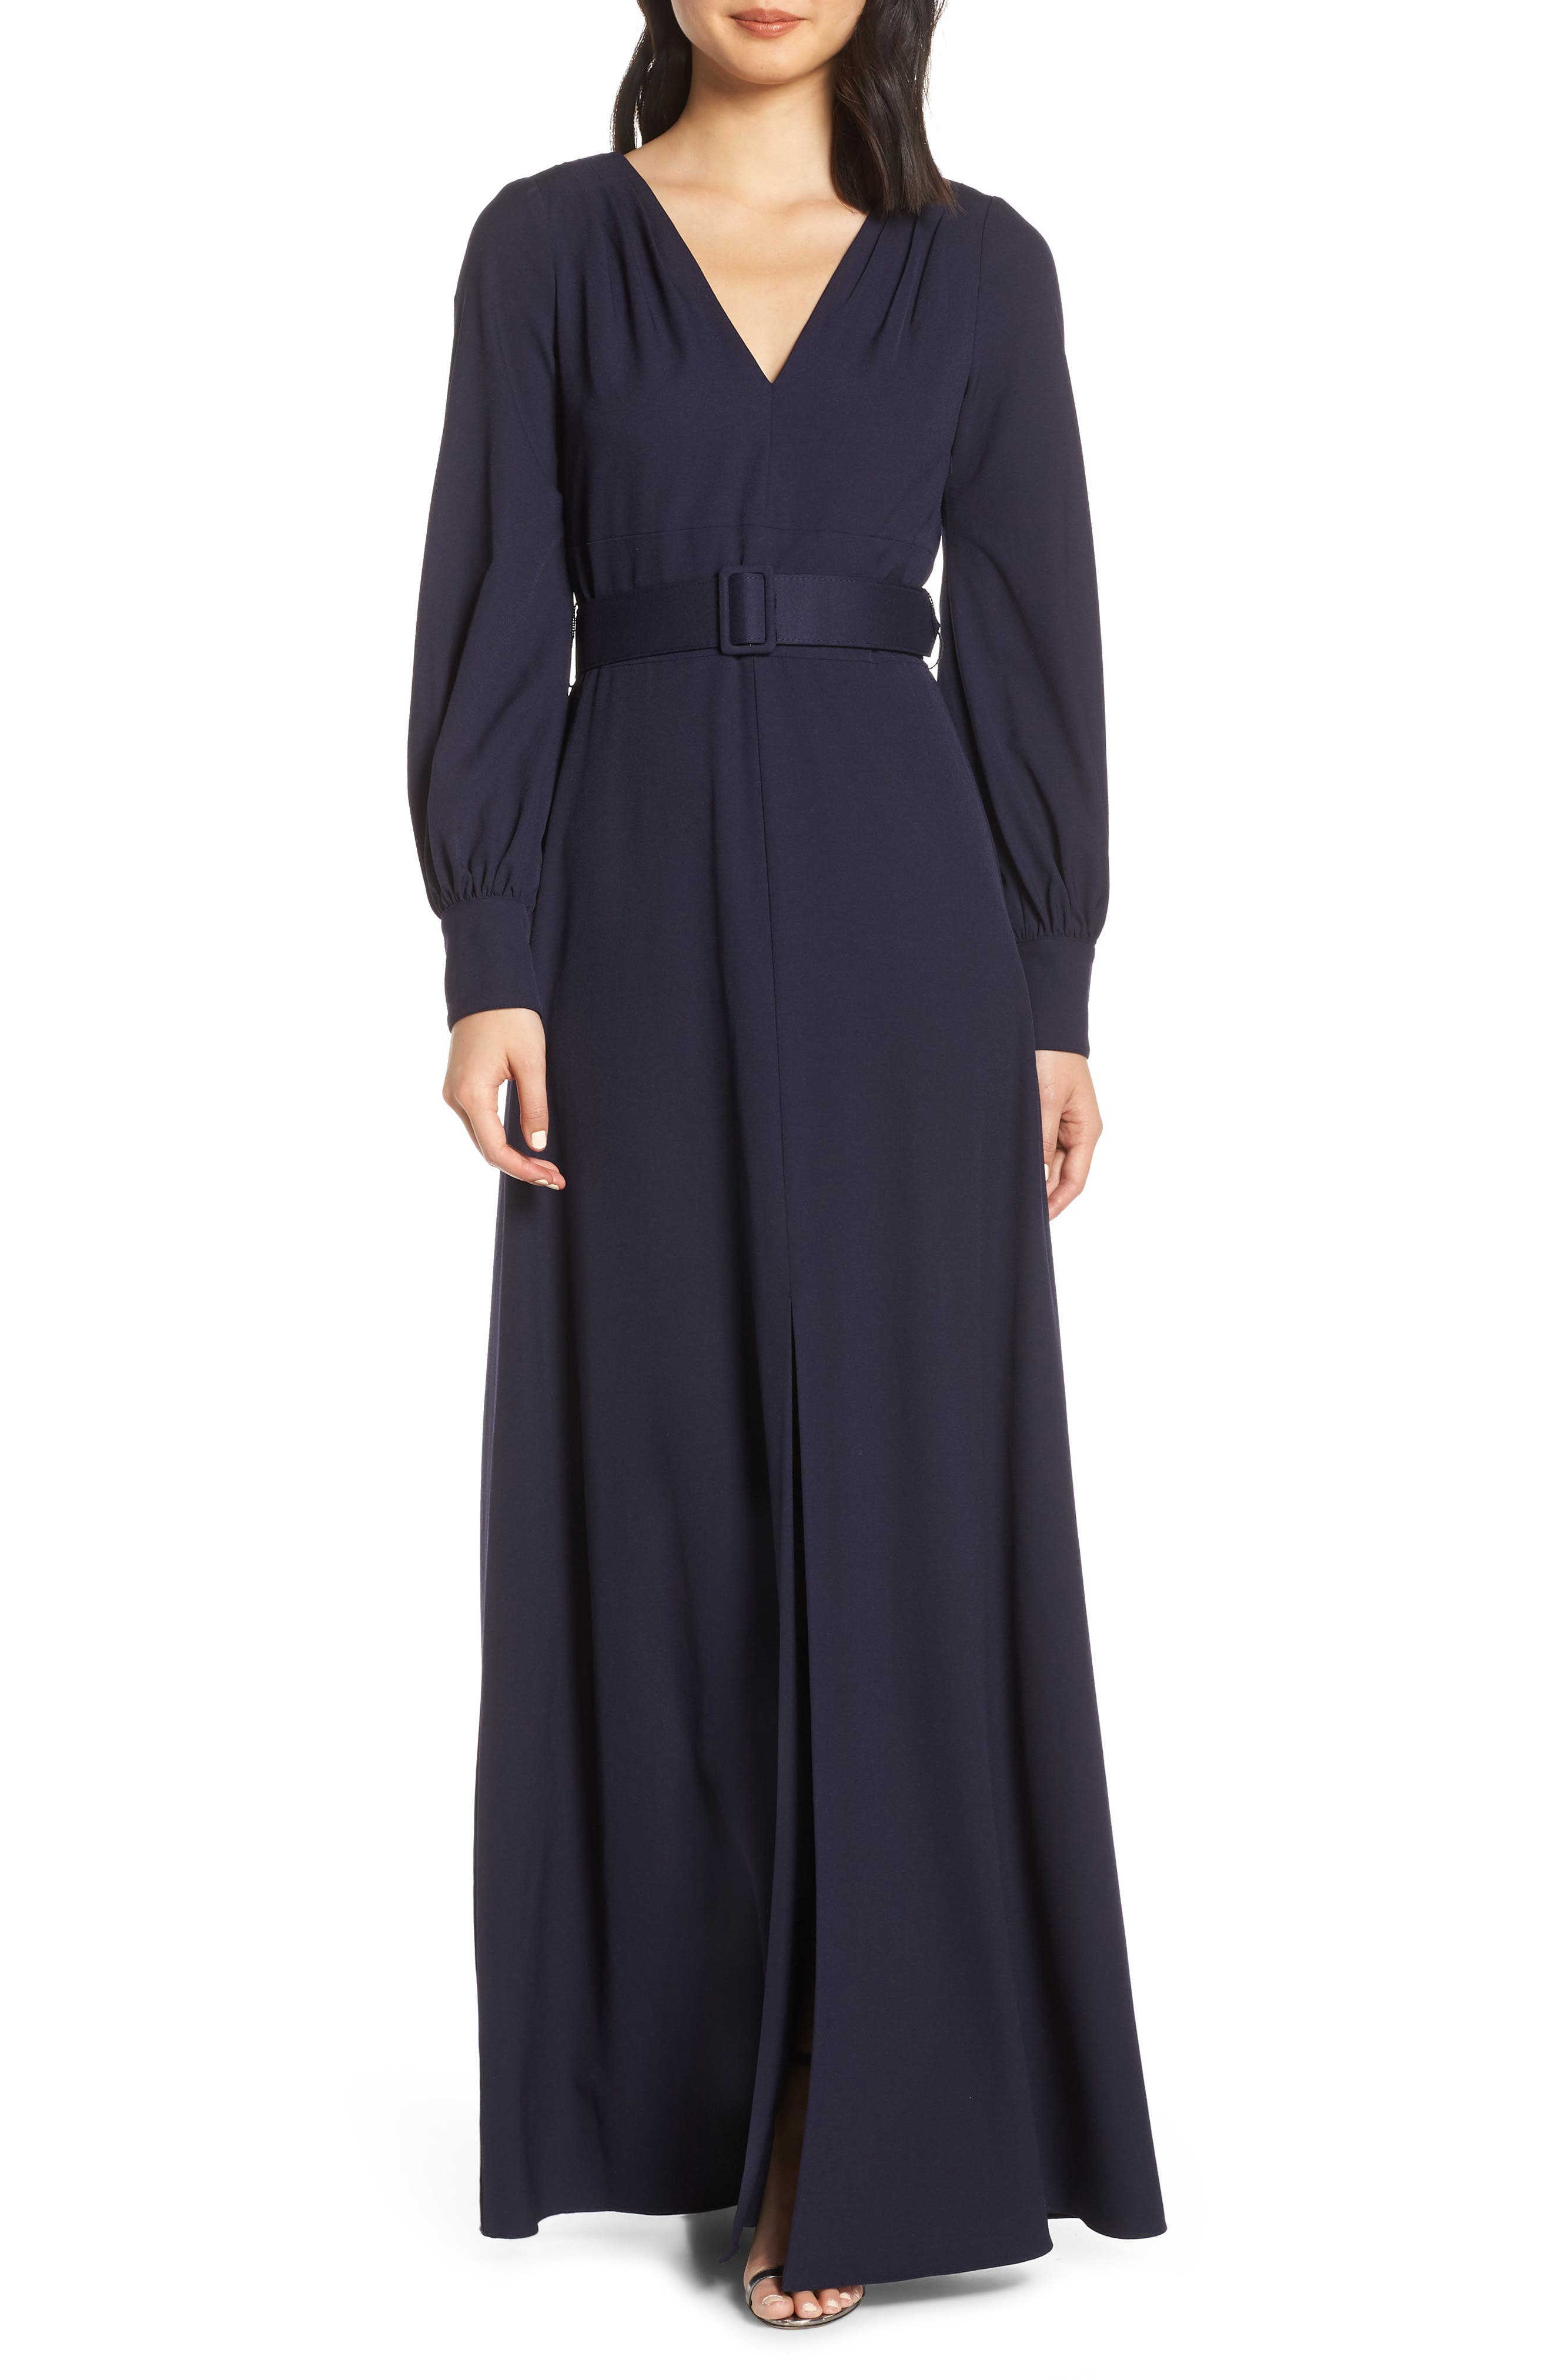 ELIZA J, Long Sleeve Belted Gown, Main thumbnail 1, color, NAVY